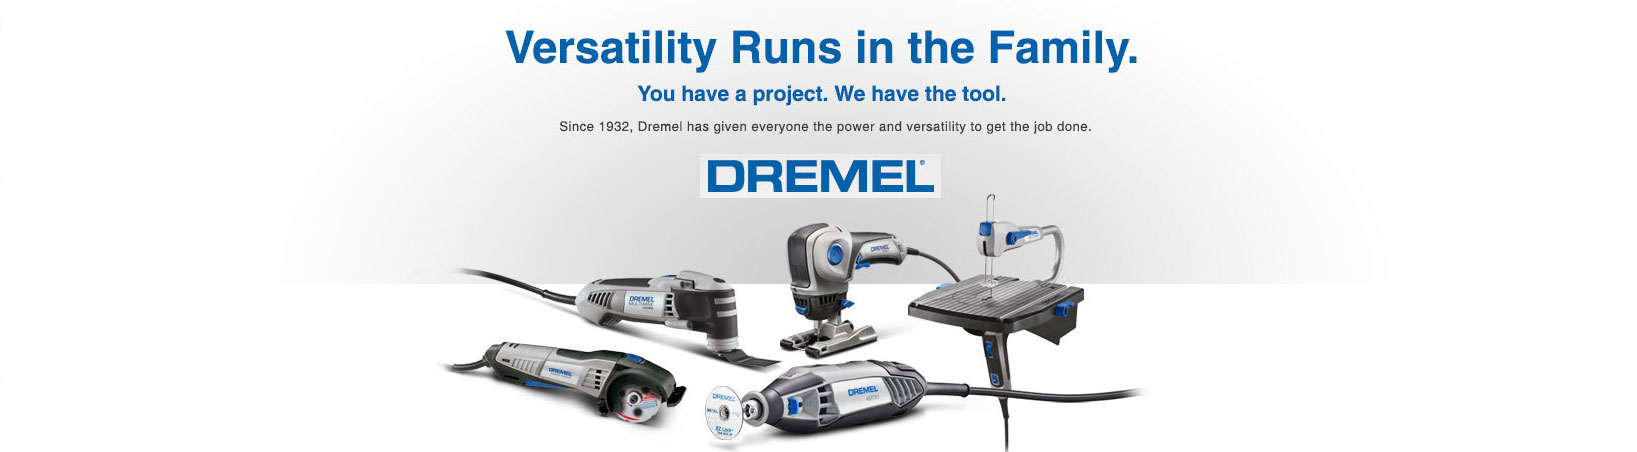 dremel-head-1.jpg